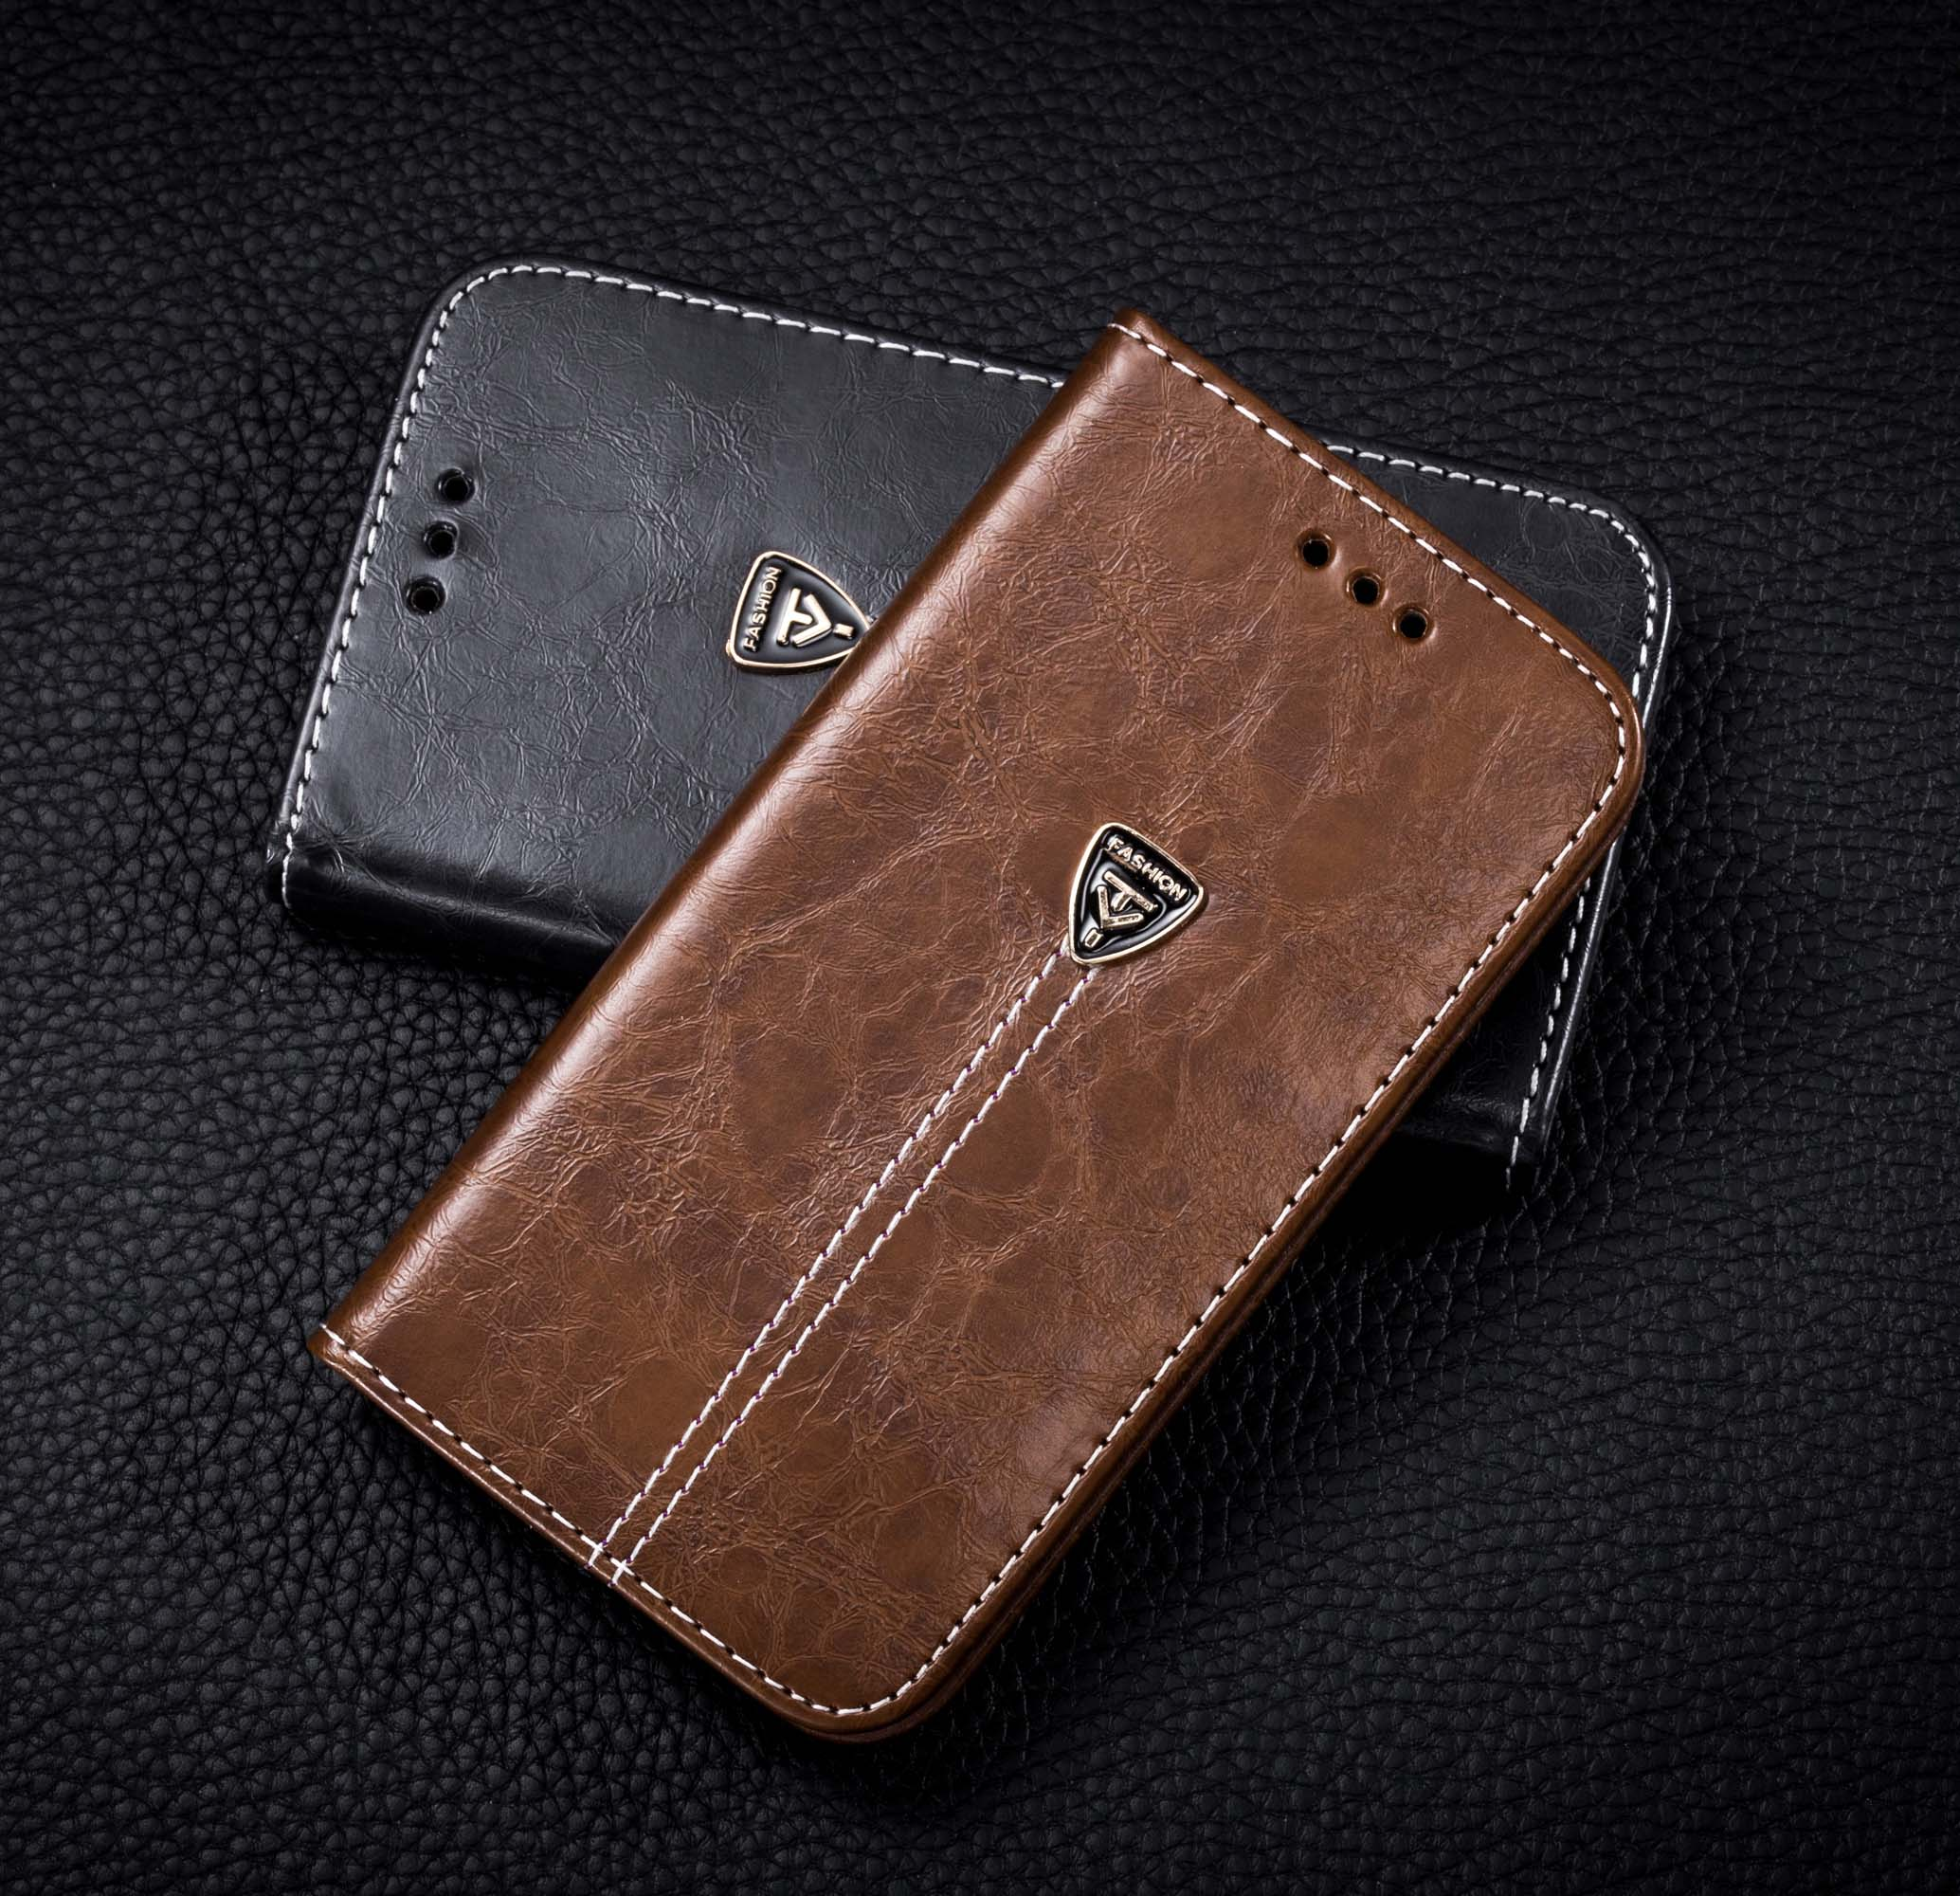 New PU Leather Case For Samsung Galaxy J7 Prime 2 Flip Cover Case For Samsung J7 Prime 2 2018 J7 Prime2 G611F G611 SM-G611F image